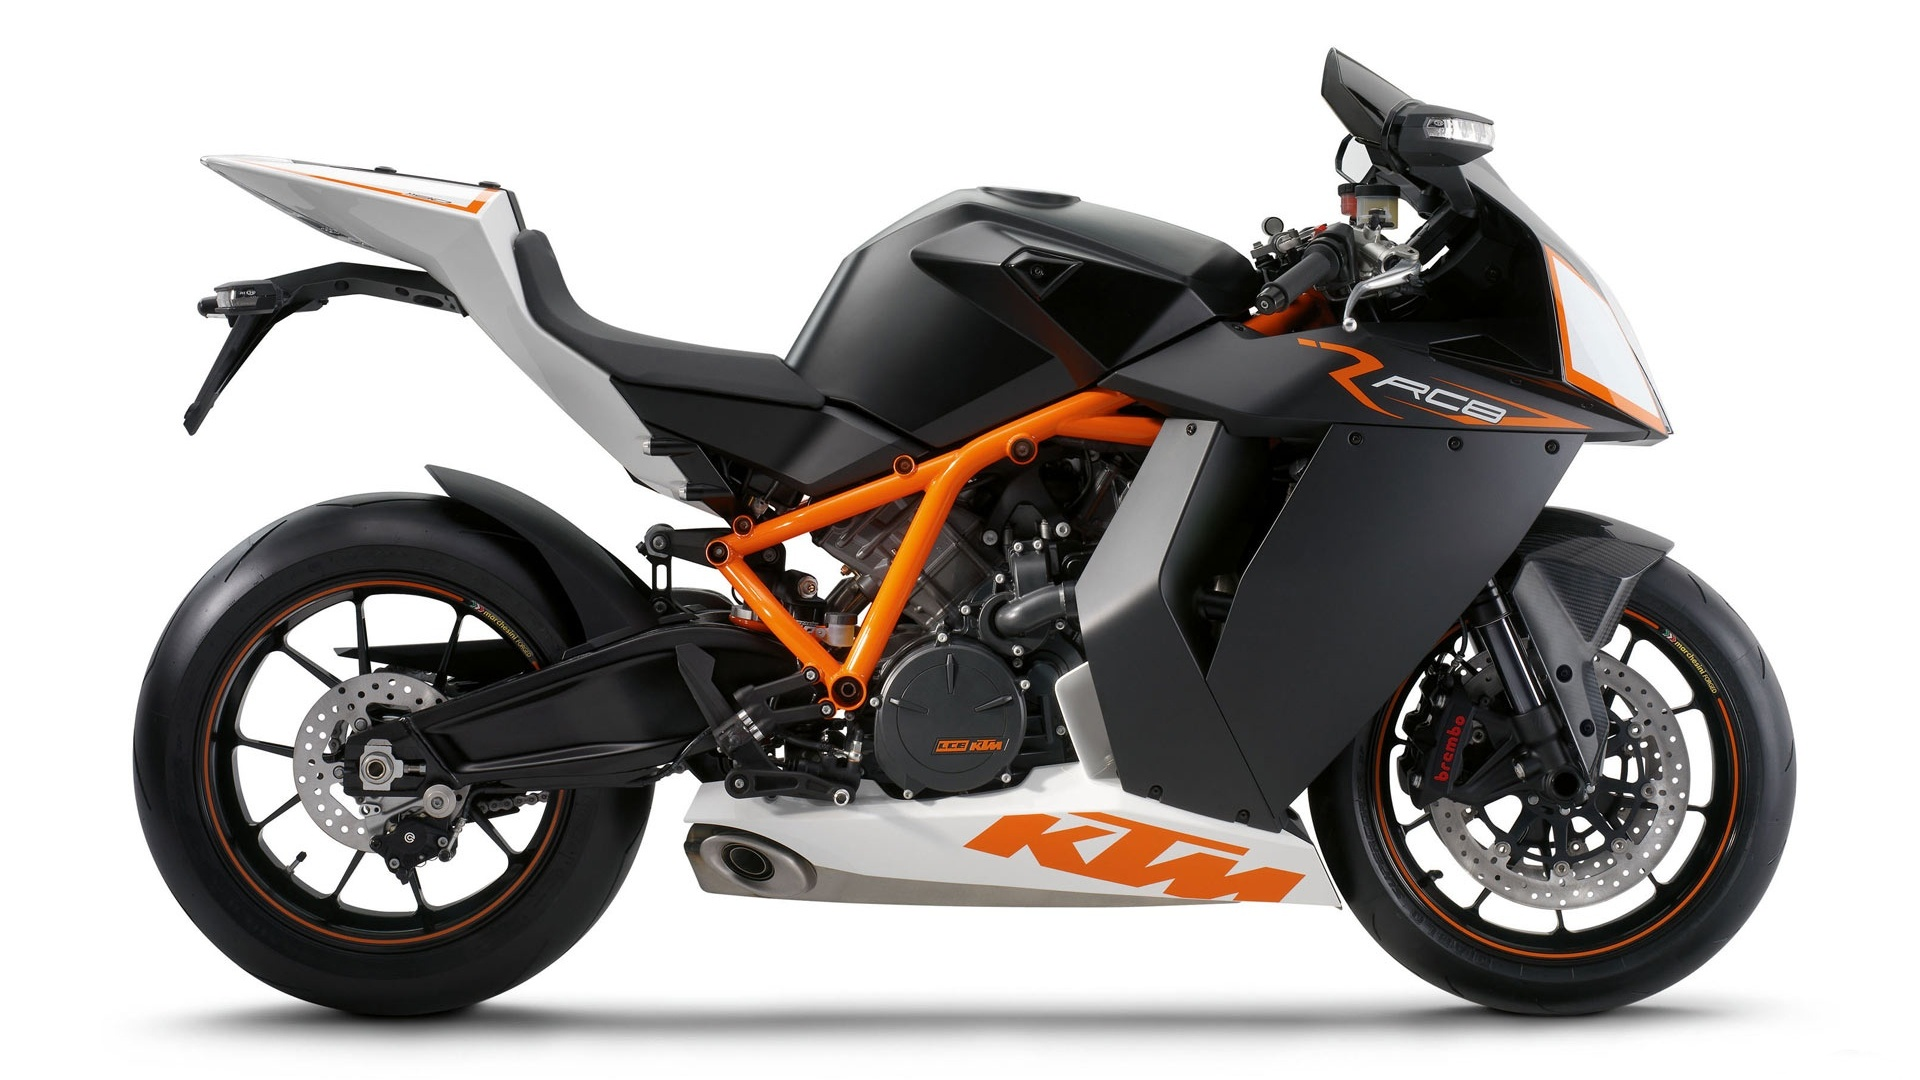 Wallpaper KTM RC8 Motorcycle 1920x1200 HD Picture, Image